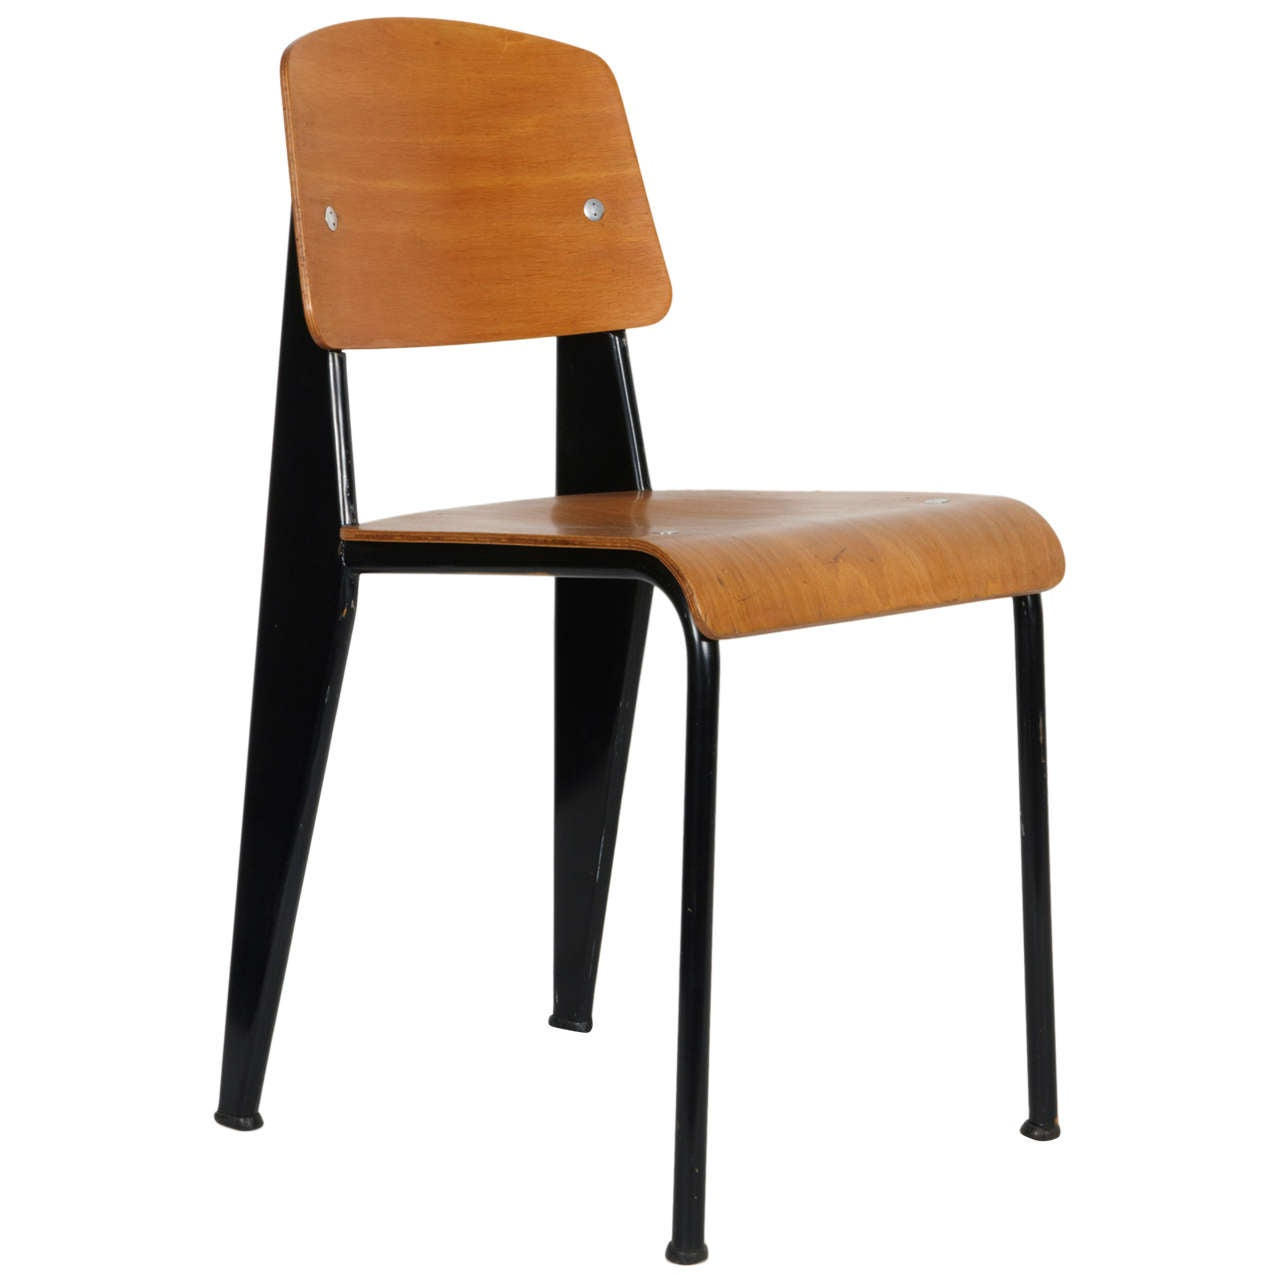 Standard chair by jean prouv circa 1950 at 1stdibs - Chaise standard jean prouve ...